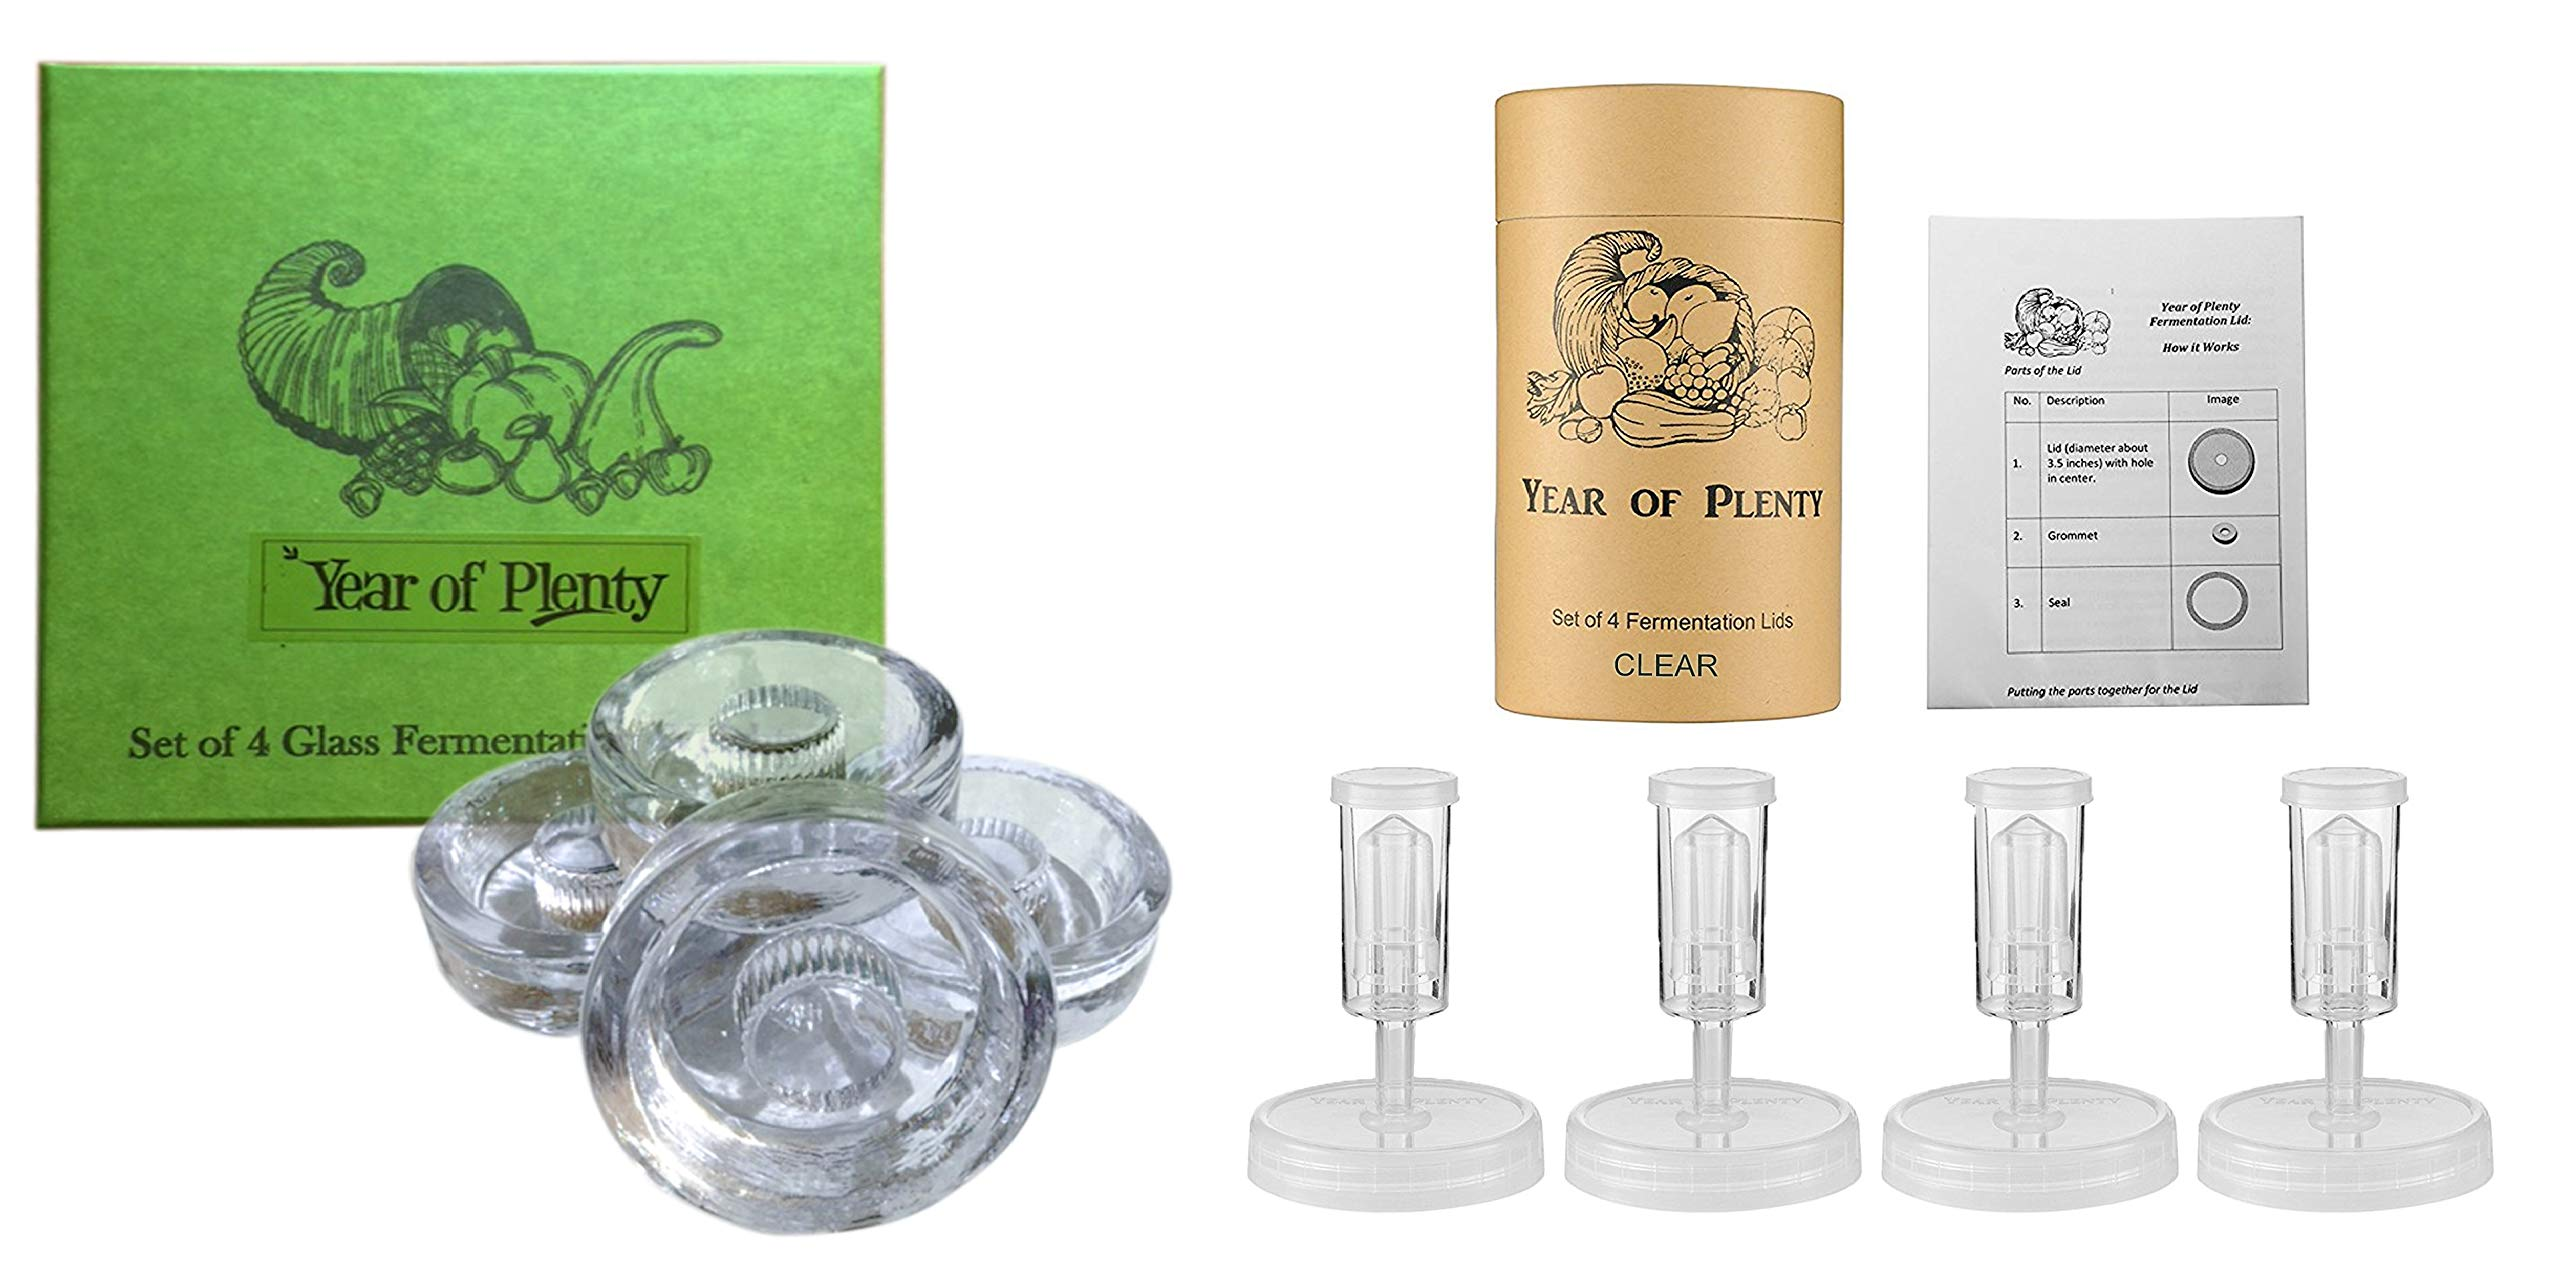 Year of Plenty Fermentation Set | Includes 4 NonSlip Grip Glass Fermentation Weights and 4 Clear Fermenting Lids | For Wide Mouth Mason Jar Ferments such as Sauerkraut, Kimchi and Pickles by Year of Plenty (Image #1)